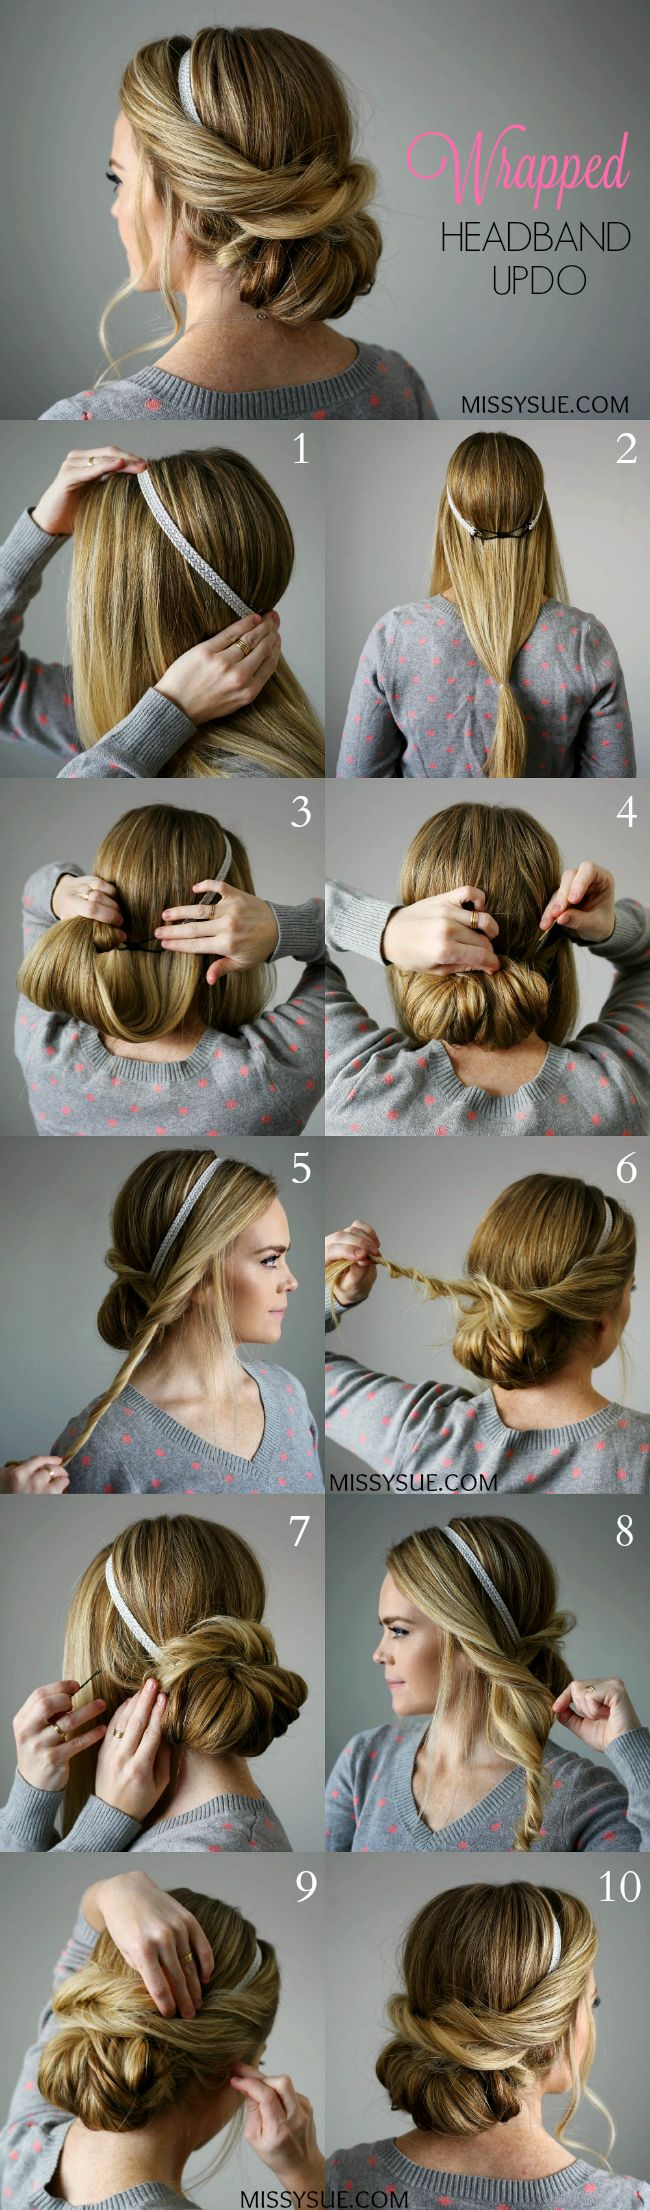 best cosas para ponerme images on pinterest hairstyle ideas